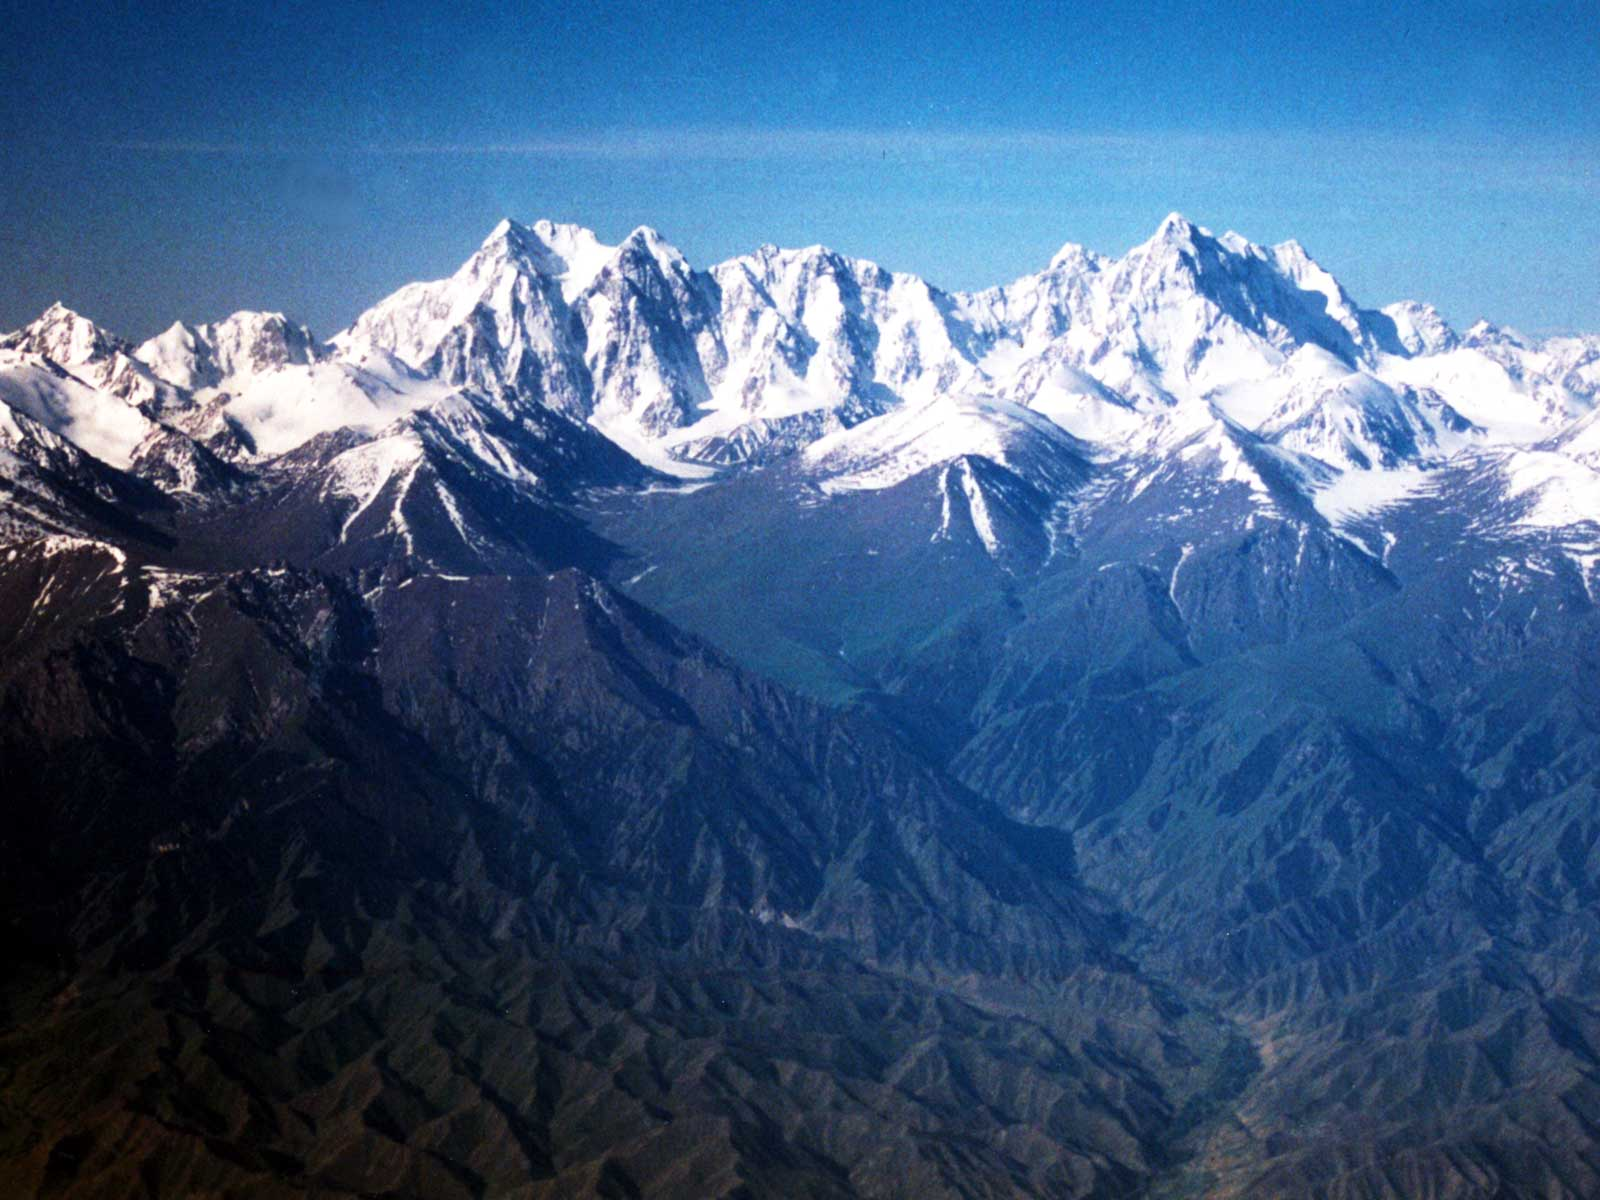 Tianshan from the air - Heavenly Mountains - 1995 University of Hawaii - Silk Road Study Tour - Steven Andrew Martin